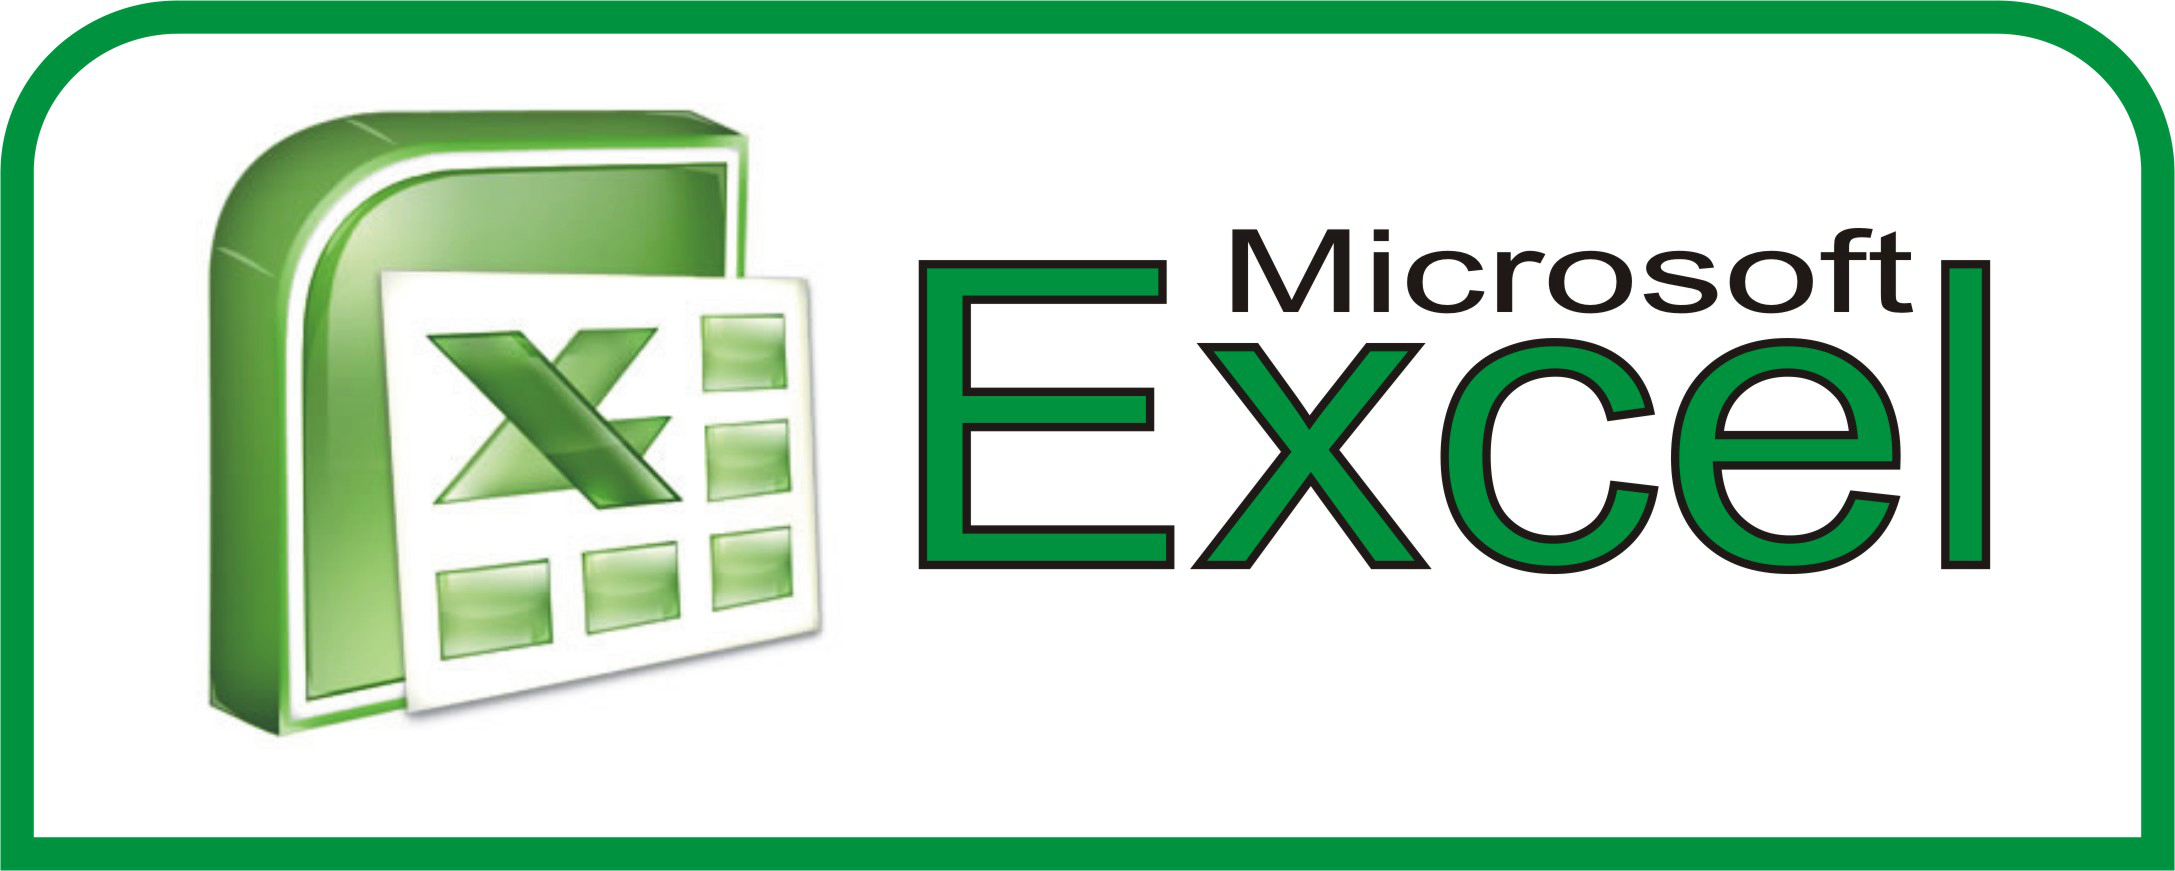 Ediblewildsus  Seductive  Excel Shortcuts You Probably Didnt Know About  Techdissected With Exciting Bell Curve Graph Excel Besides Excel Count Command Furthermore Excel Extract Day From Date With Cute Financial Modeling Using Excel And Vba Also Histogram Generator Excel In Addition Avery Templates For Excel And Excel To Oracle As Well As Excel  Quick Reference Additionally Excel Intermediate Test From Techdissectedcom With Ediblewildsus  Exciting  Excel Shortcuts You Probably Didnt Know About  Techdissected With Cute Bell Curve Graph Excel Besides Excel Count Command Furthermore Excel Extract Day From Date And Seductive Financial Modeling Using Excel And Vba Also Histogram Generator Excel In Addition Avery Templates For Excel From Techdissectedcom